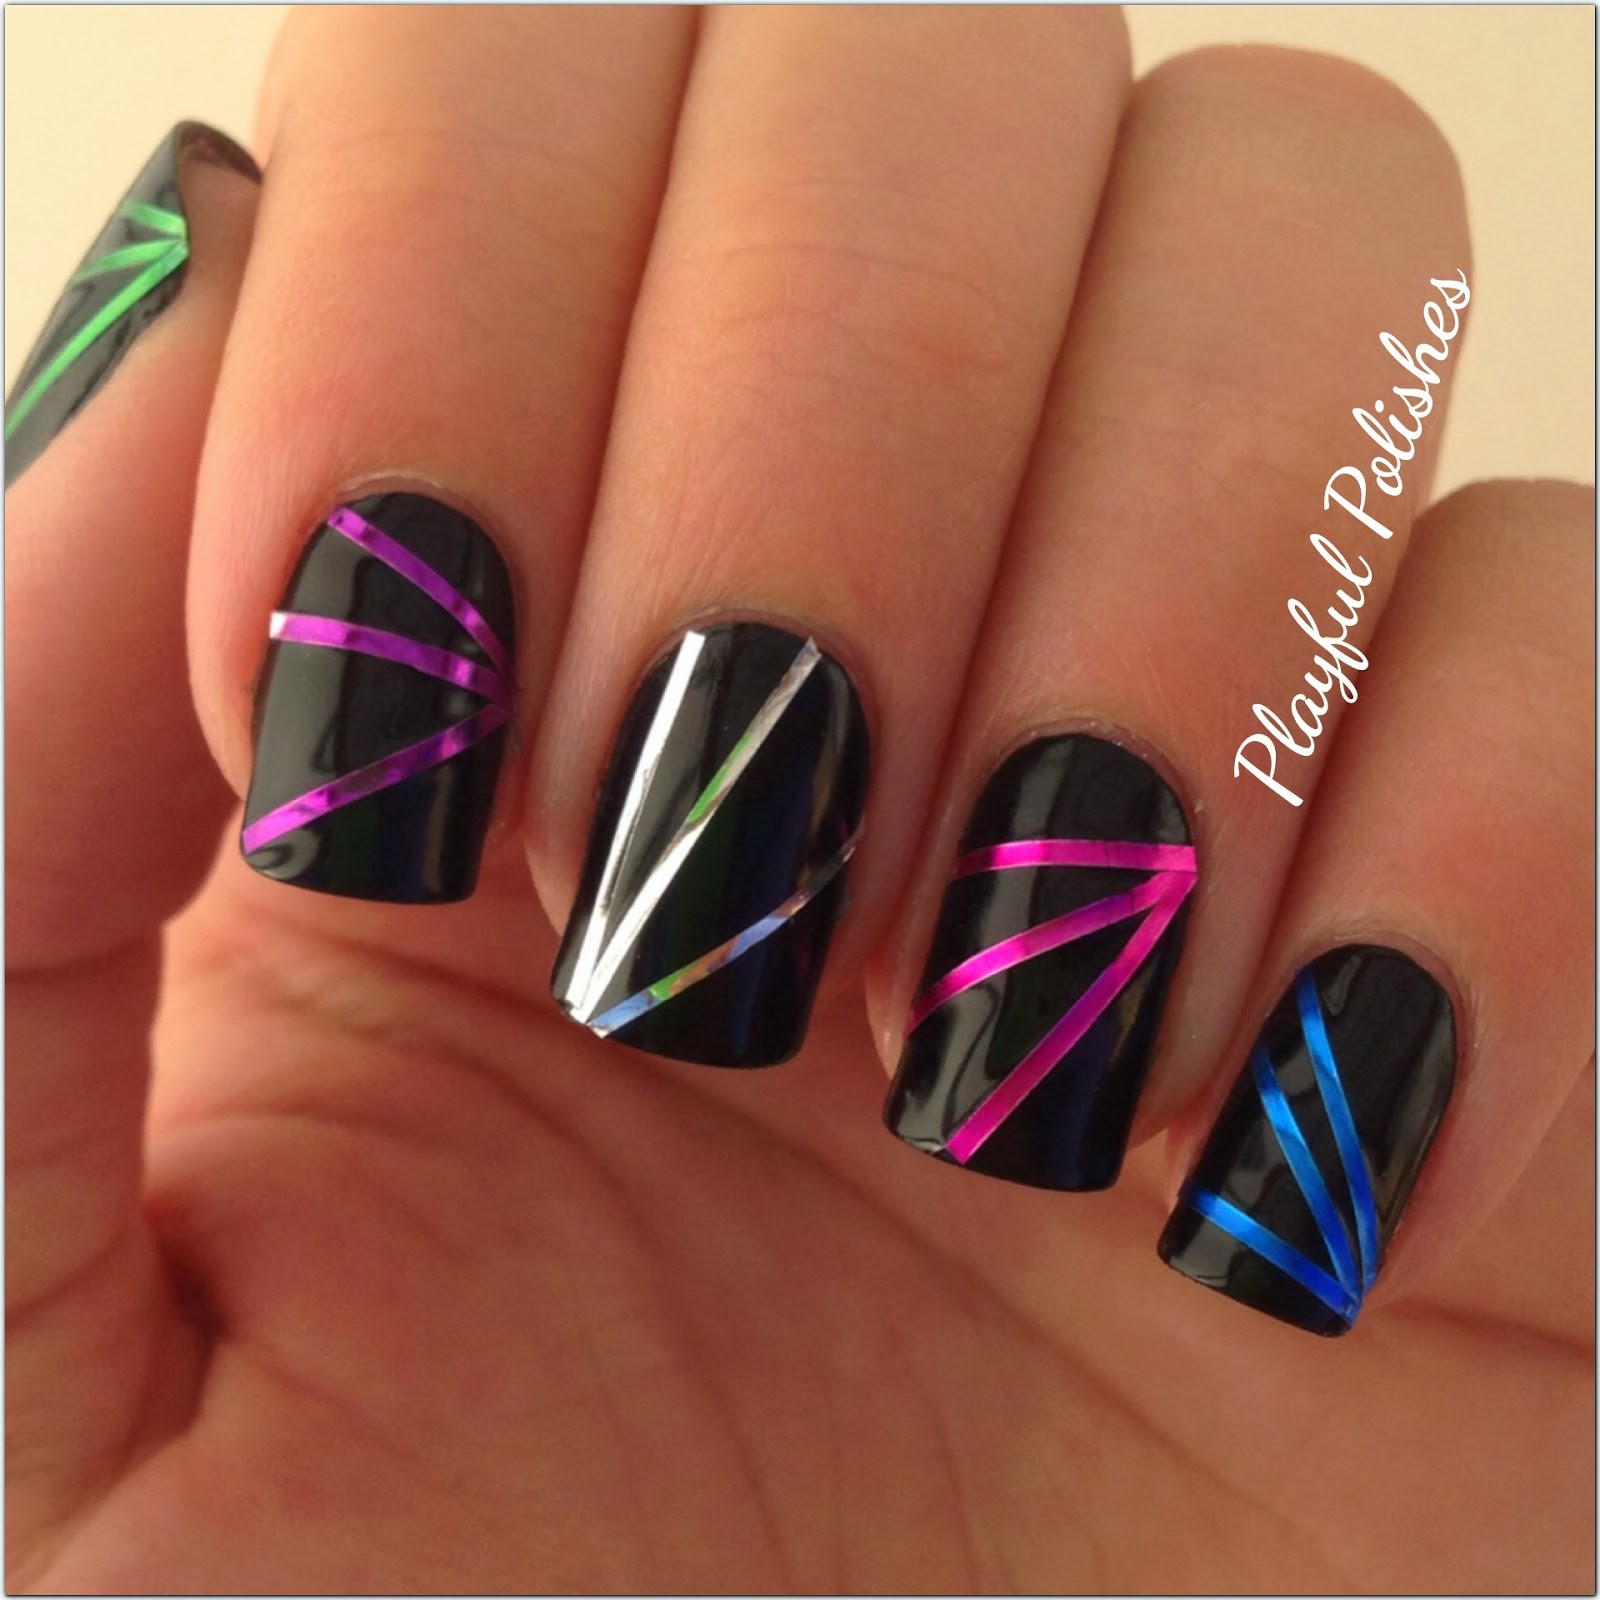 Nail Art Using Striping Tape: Playful Polishes: 31 DAY NAIL ART CHALLENGE: METALLIC NAILS